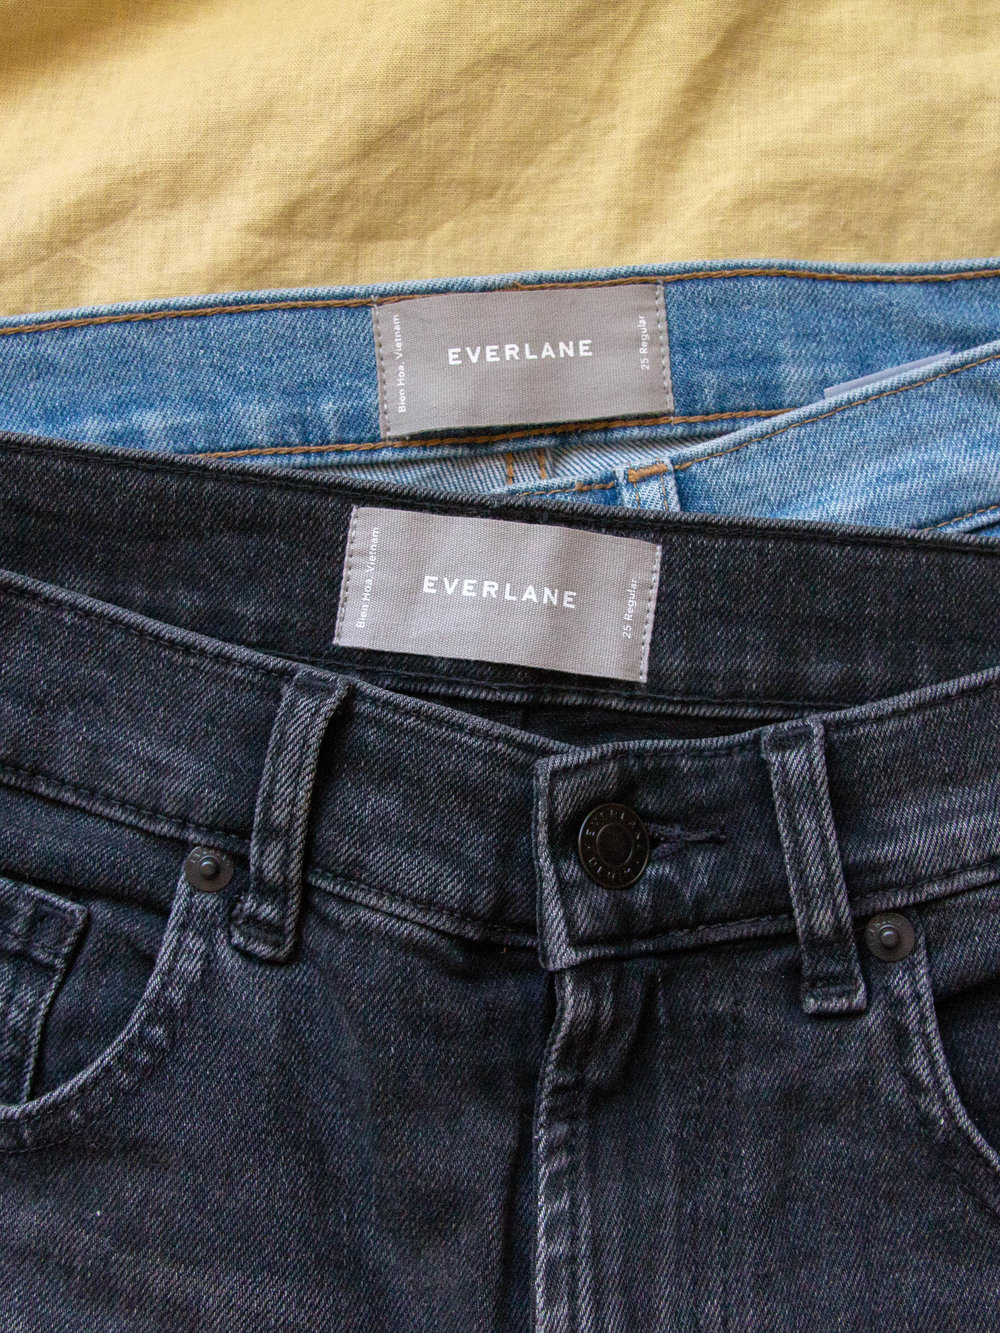 """Everlane denim - Because the weather has been cooling down a bit lately, I've been rocking a lot of denim! My favorite pairs of denim lately have been The Modern Boyfriend (which is currently on sale!!) and The Cheeky Straight Leg, which are both from Everlane. They're sustainably and ethically made in what they claim to be the """"world's cleanest denim factory,"""" which is great news for the planet and your moral compass.Although Everlane has a reputation for being on the more expensive side, their denim is priced in the same range as Urban Outfitters and Levi's, making them a great slow fashion alternative.If you do purchase your own pair of Everlane denim, I would recommend sizing down one or two sizes, depending on how snug you want them to fit around the seat.Everlane Denim*"""